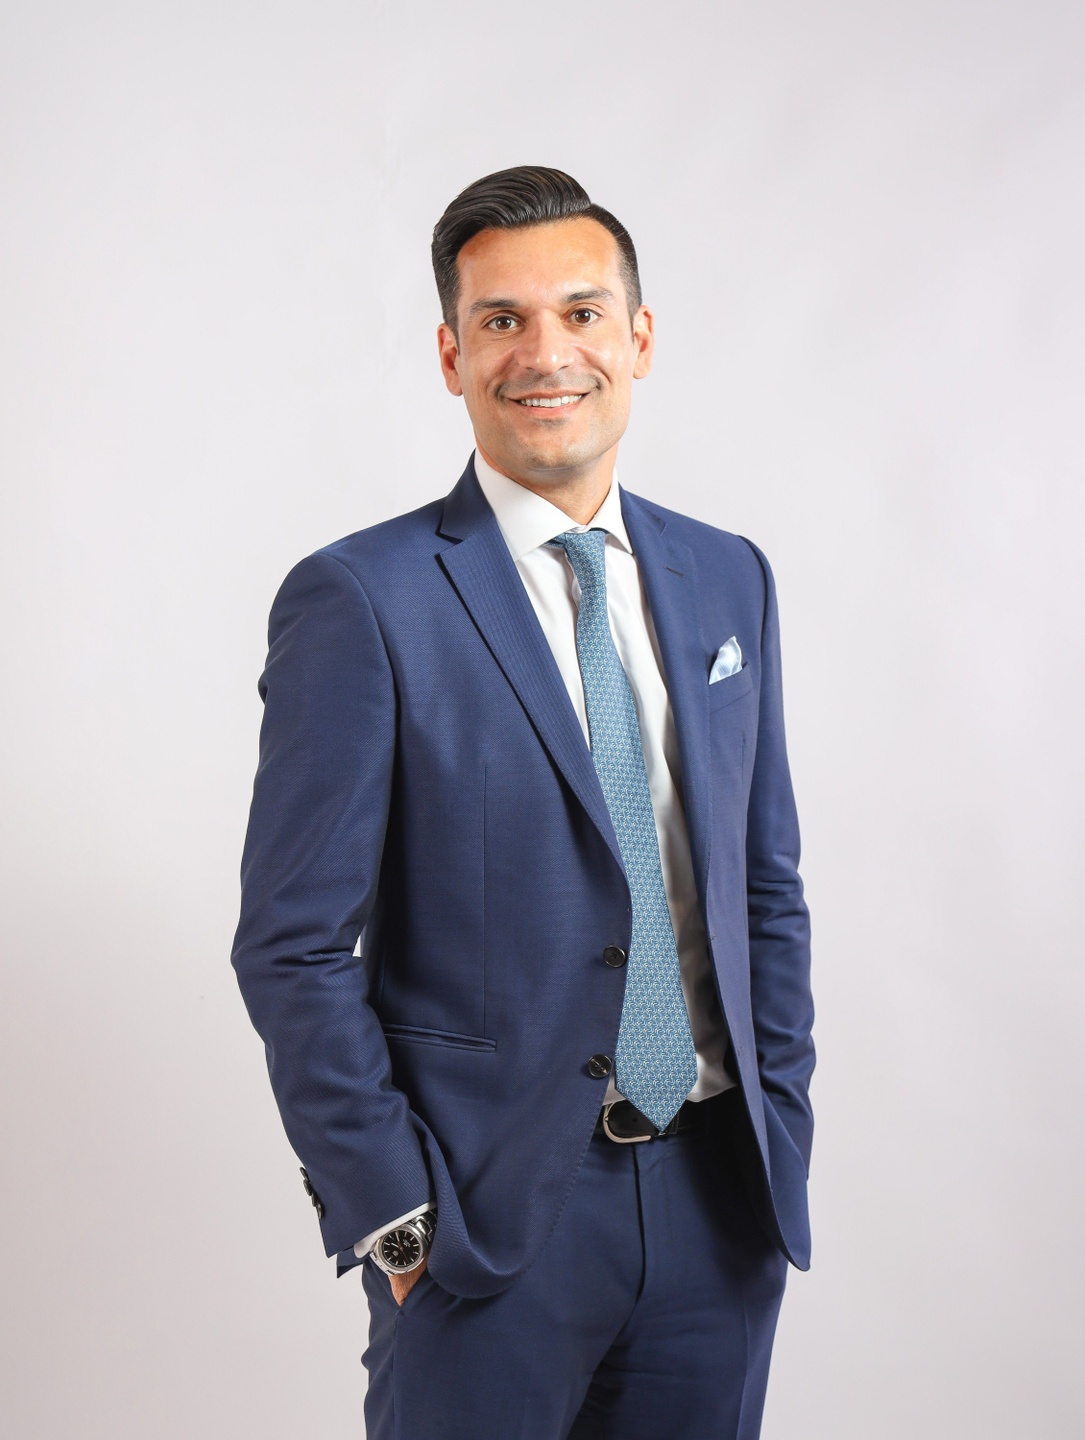 Darren Krakowiak is a leader in the commercial real estate industry in Asia Pacific. He has coached and mentored hundreds of professionals to higher levels of performance..